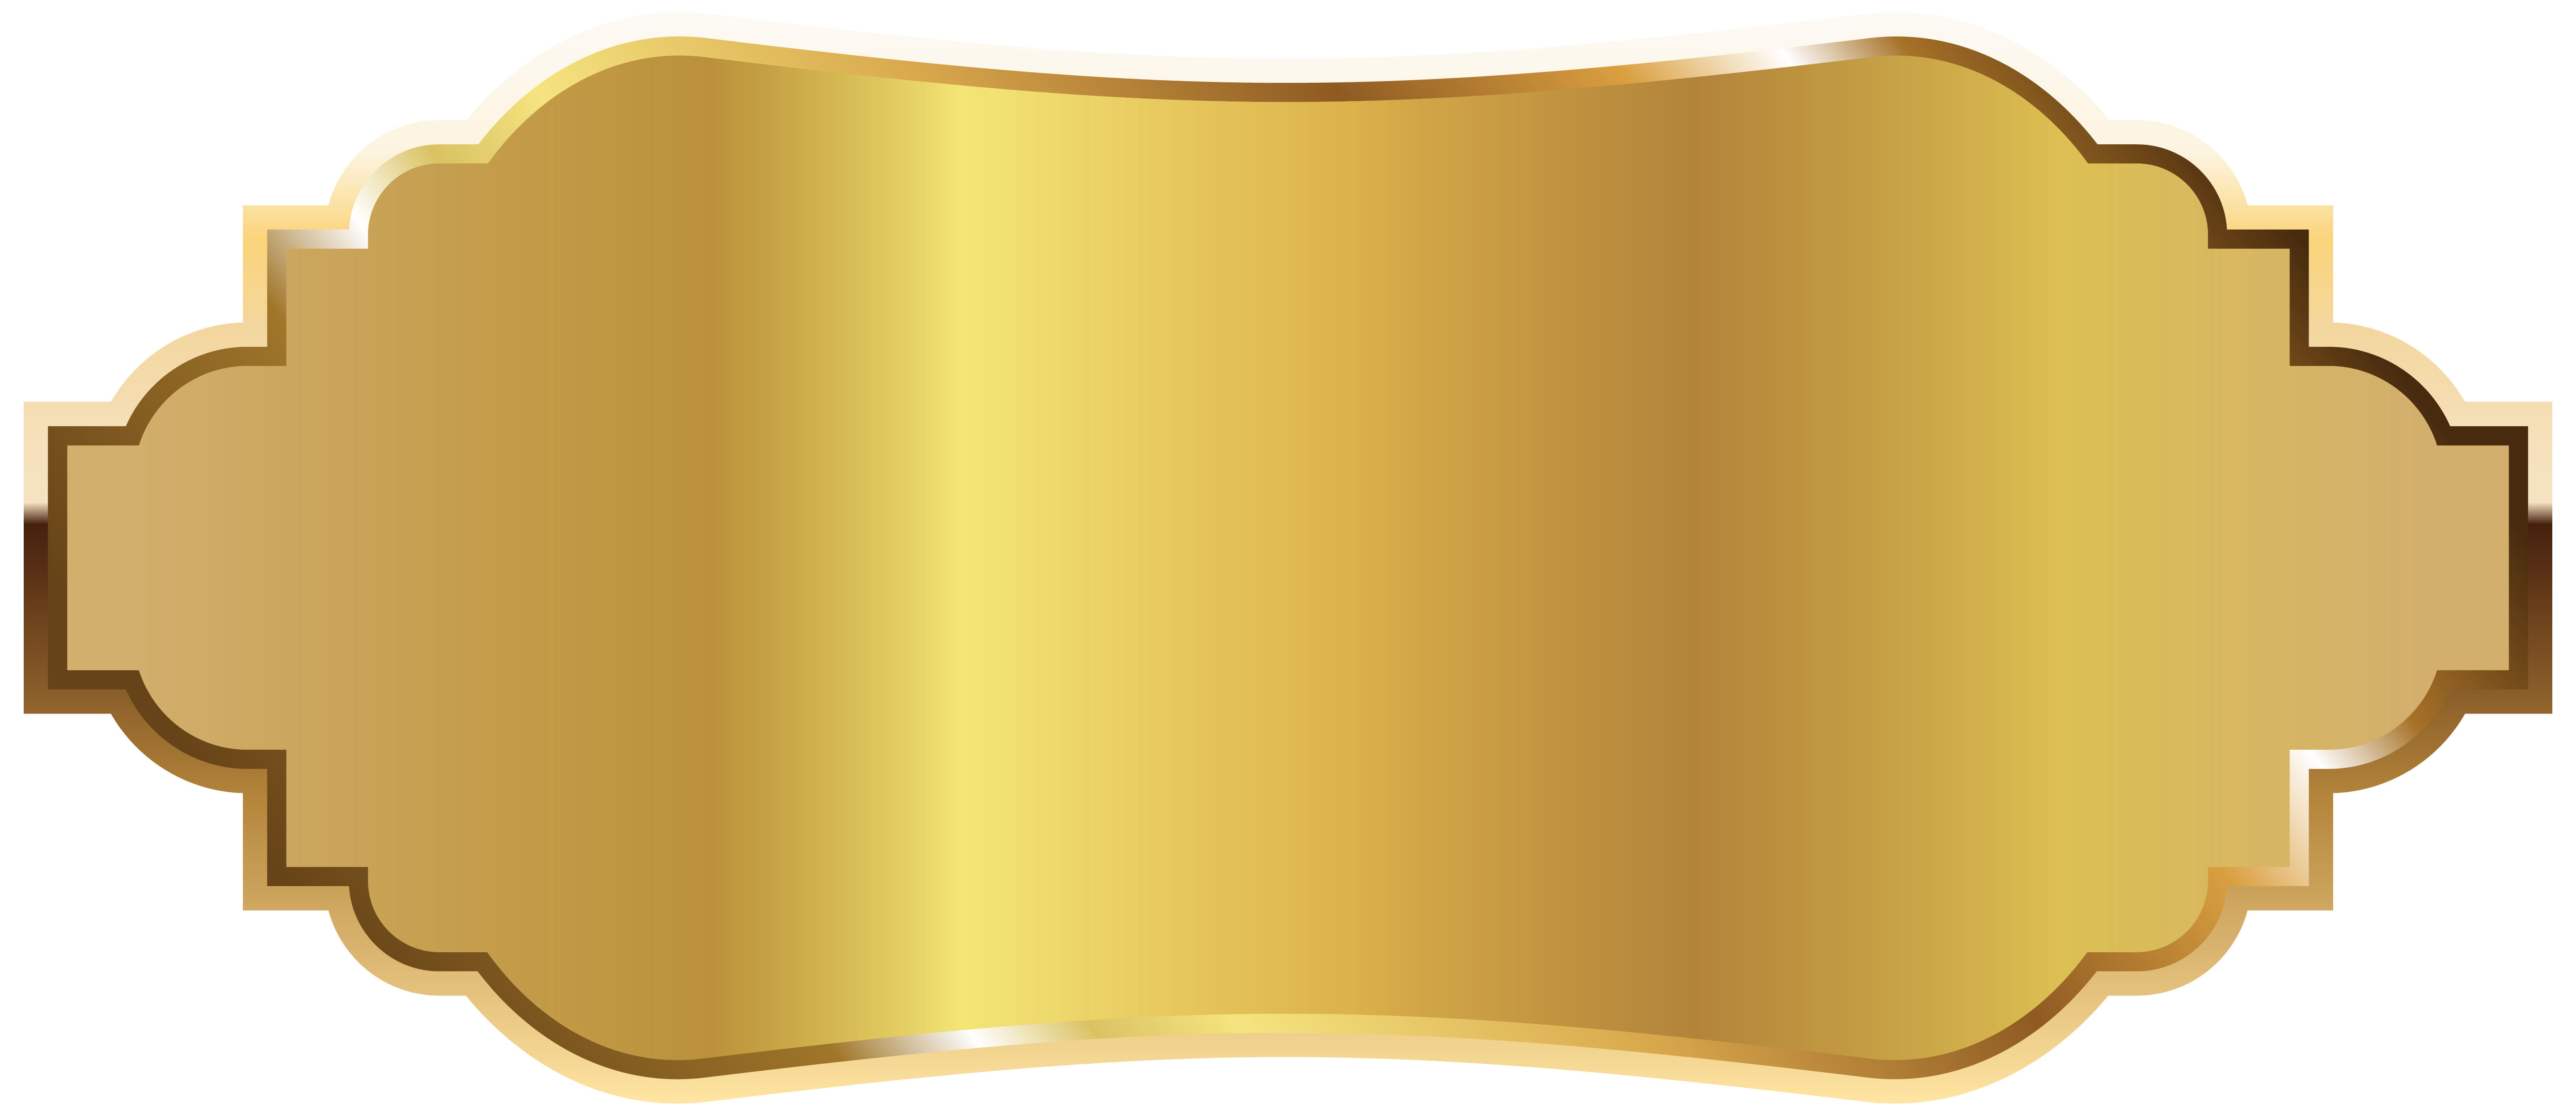 Grains clipart golden wheat. Label png picture gallery